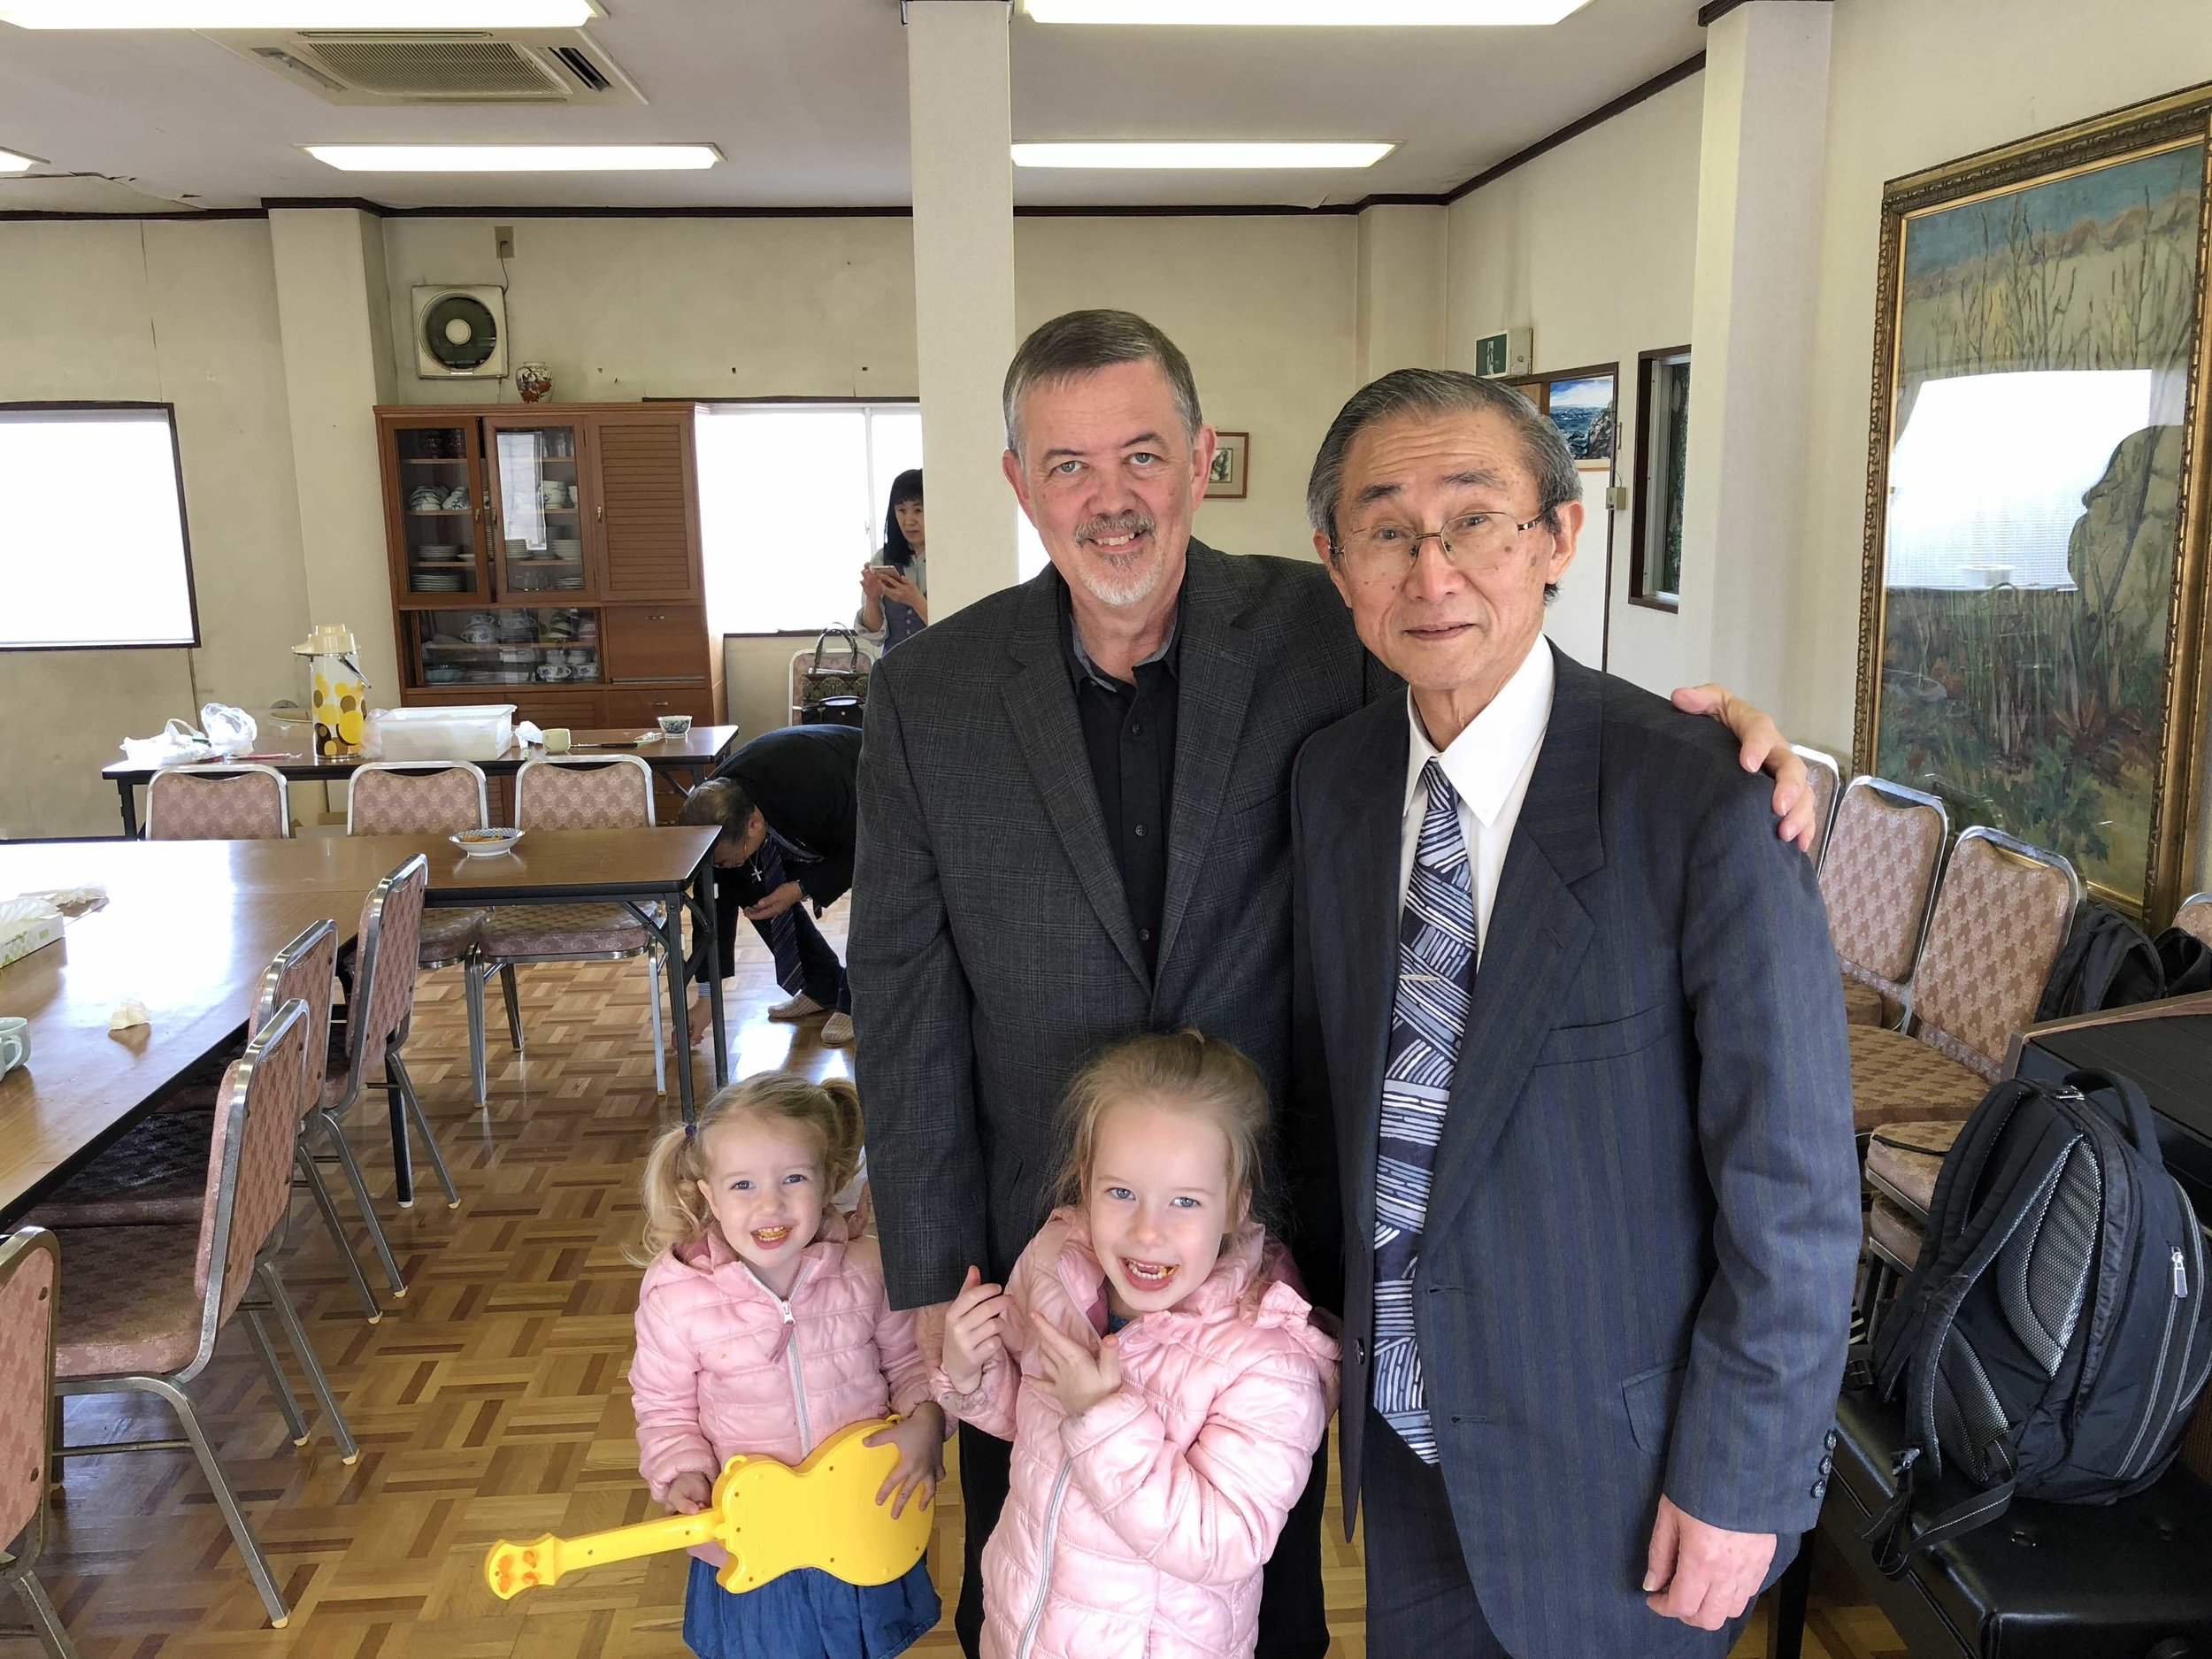 We're so glad that Bob Sayre, Bobby's dad, was able to come to Japan for two weeks to help us get settled. This was especially needed after the emotional loss of Cindy Sayre a few weeks ago.